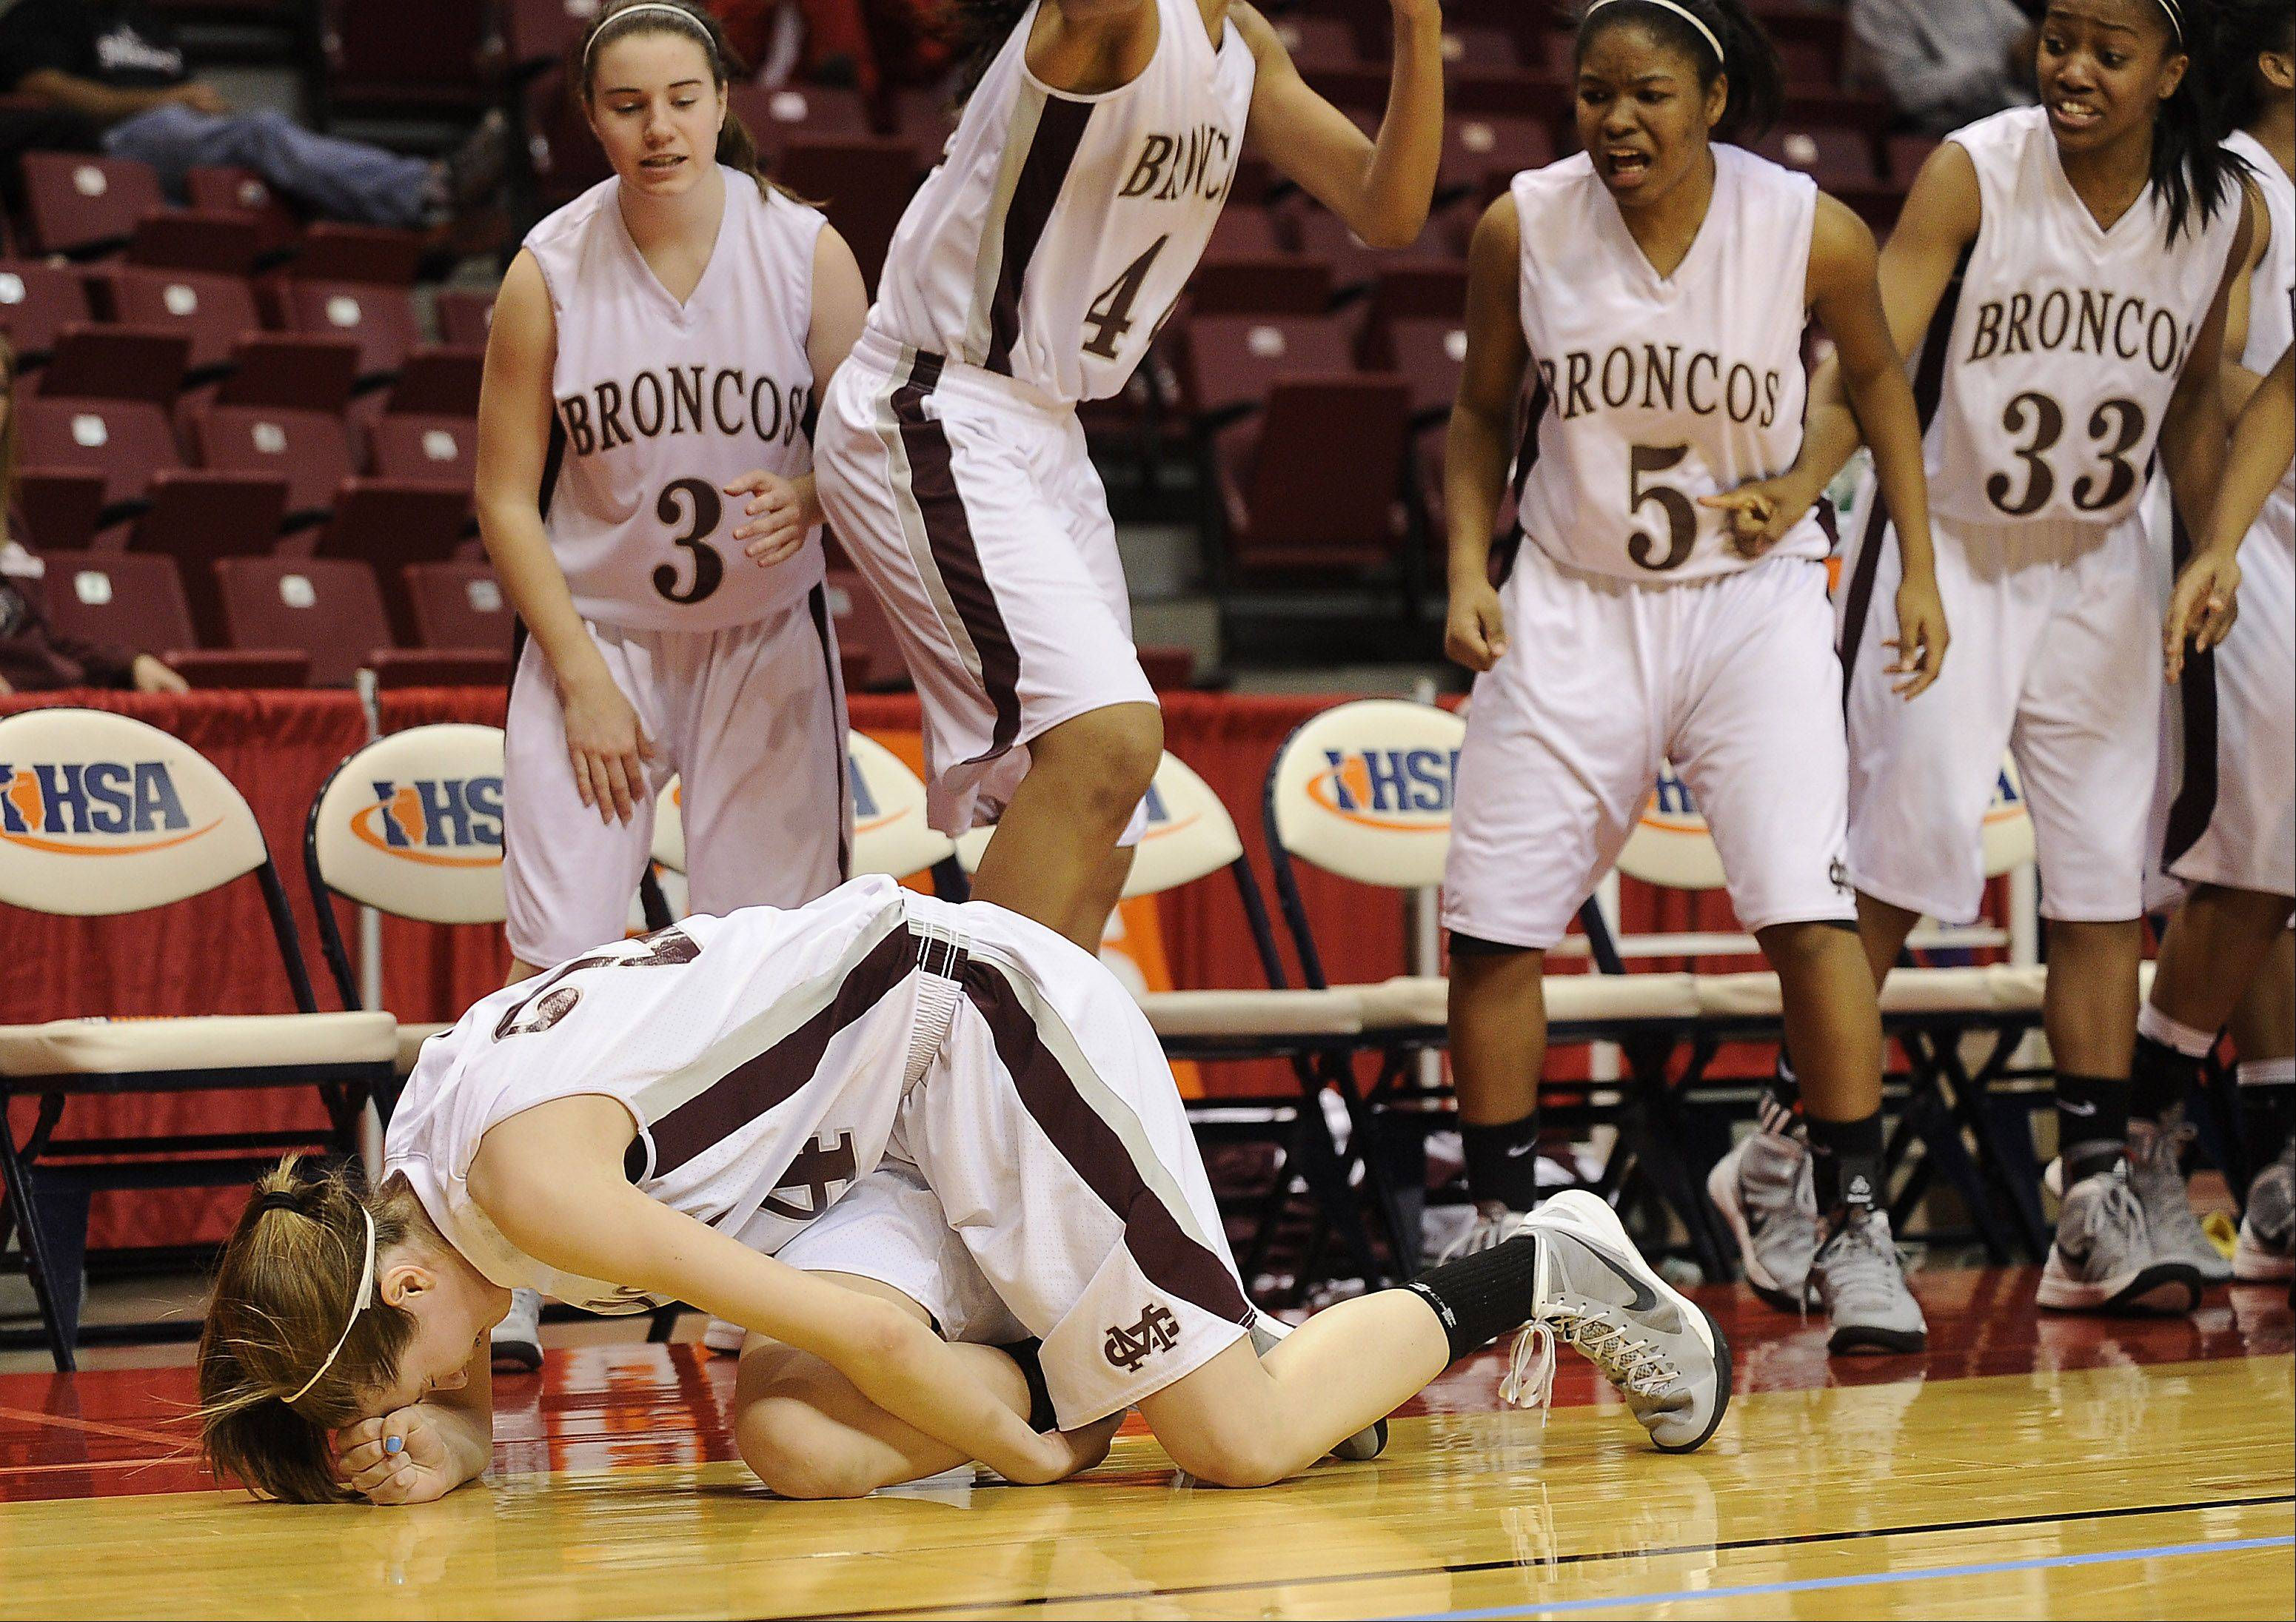 Montini's Kateri Stone goes down after shooting a three-pointer late in the second half.